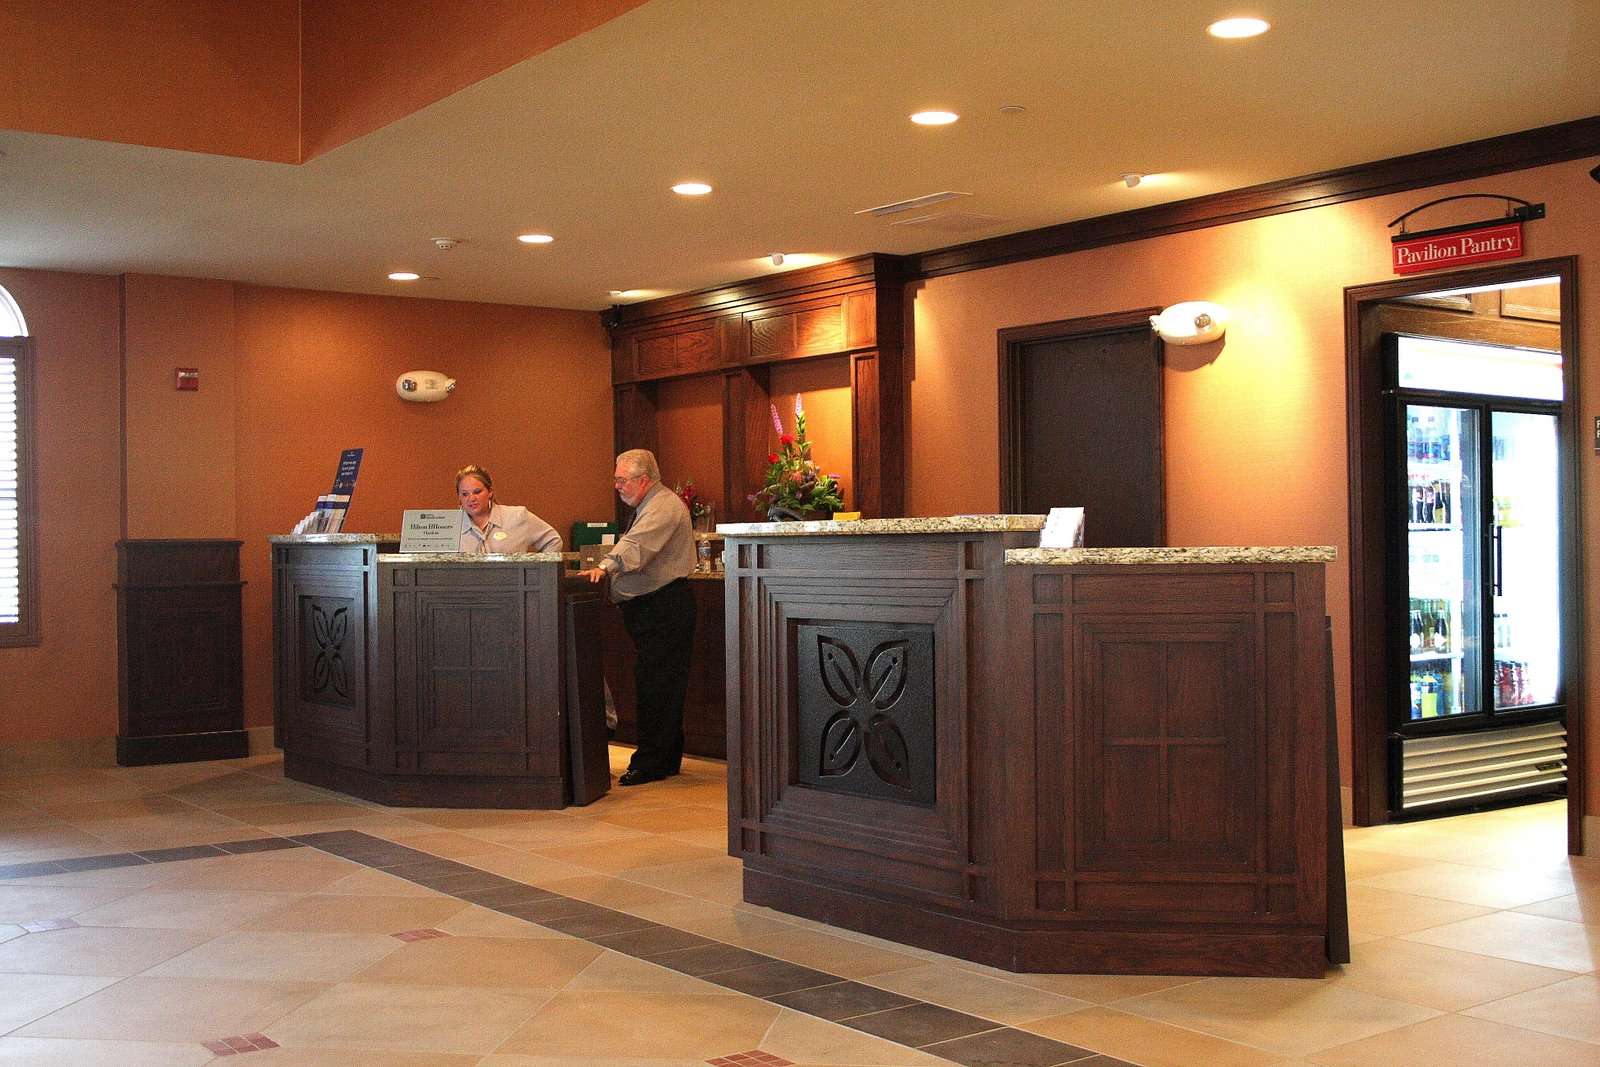 High End Hotel Millwork Hilton Garden Inn Granbury